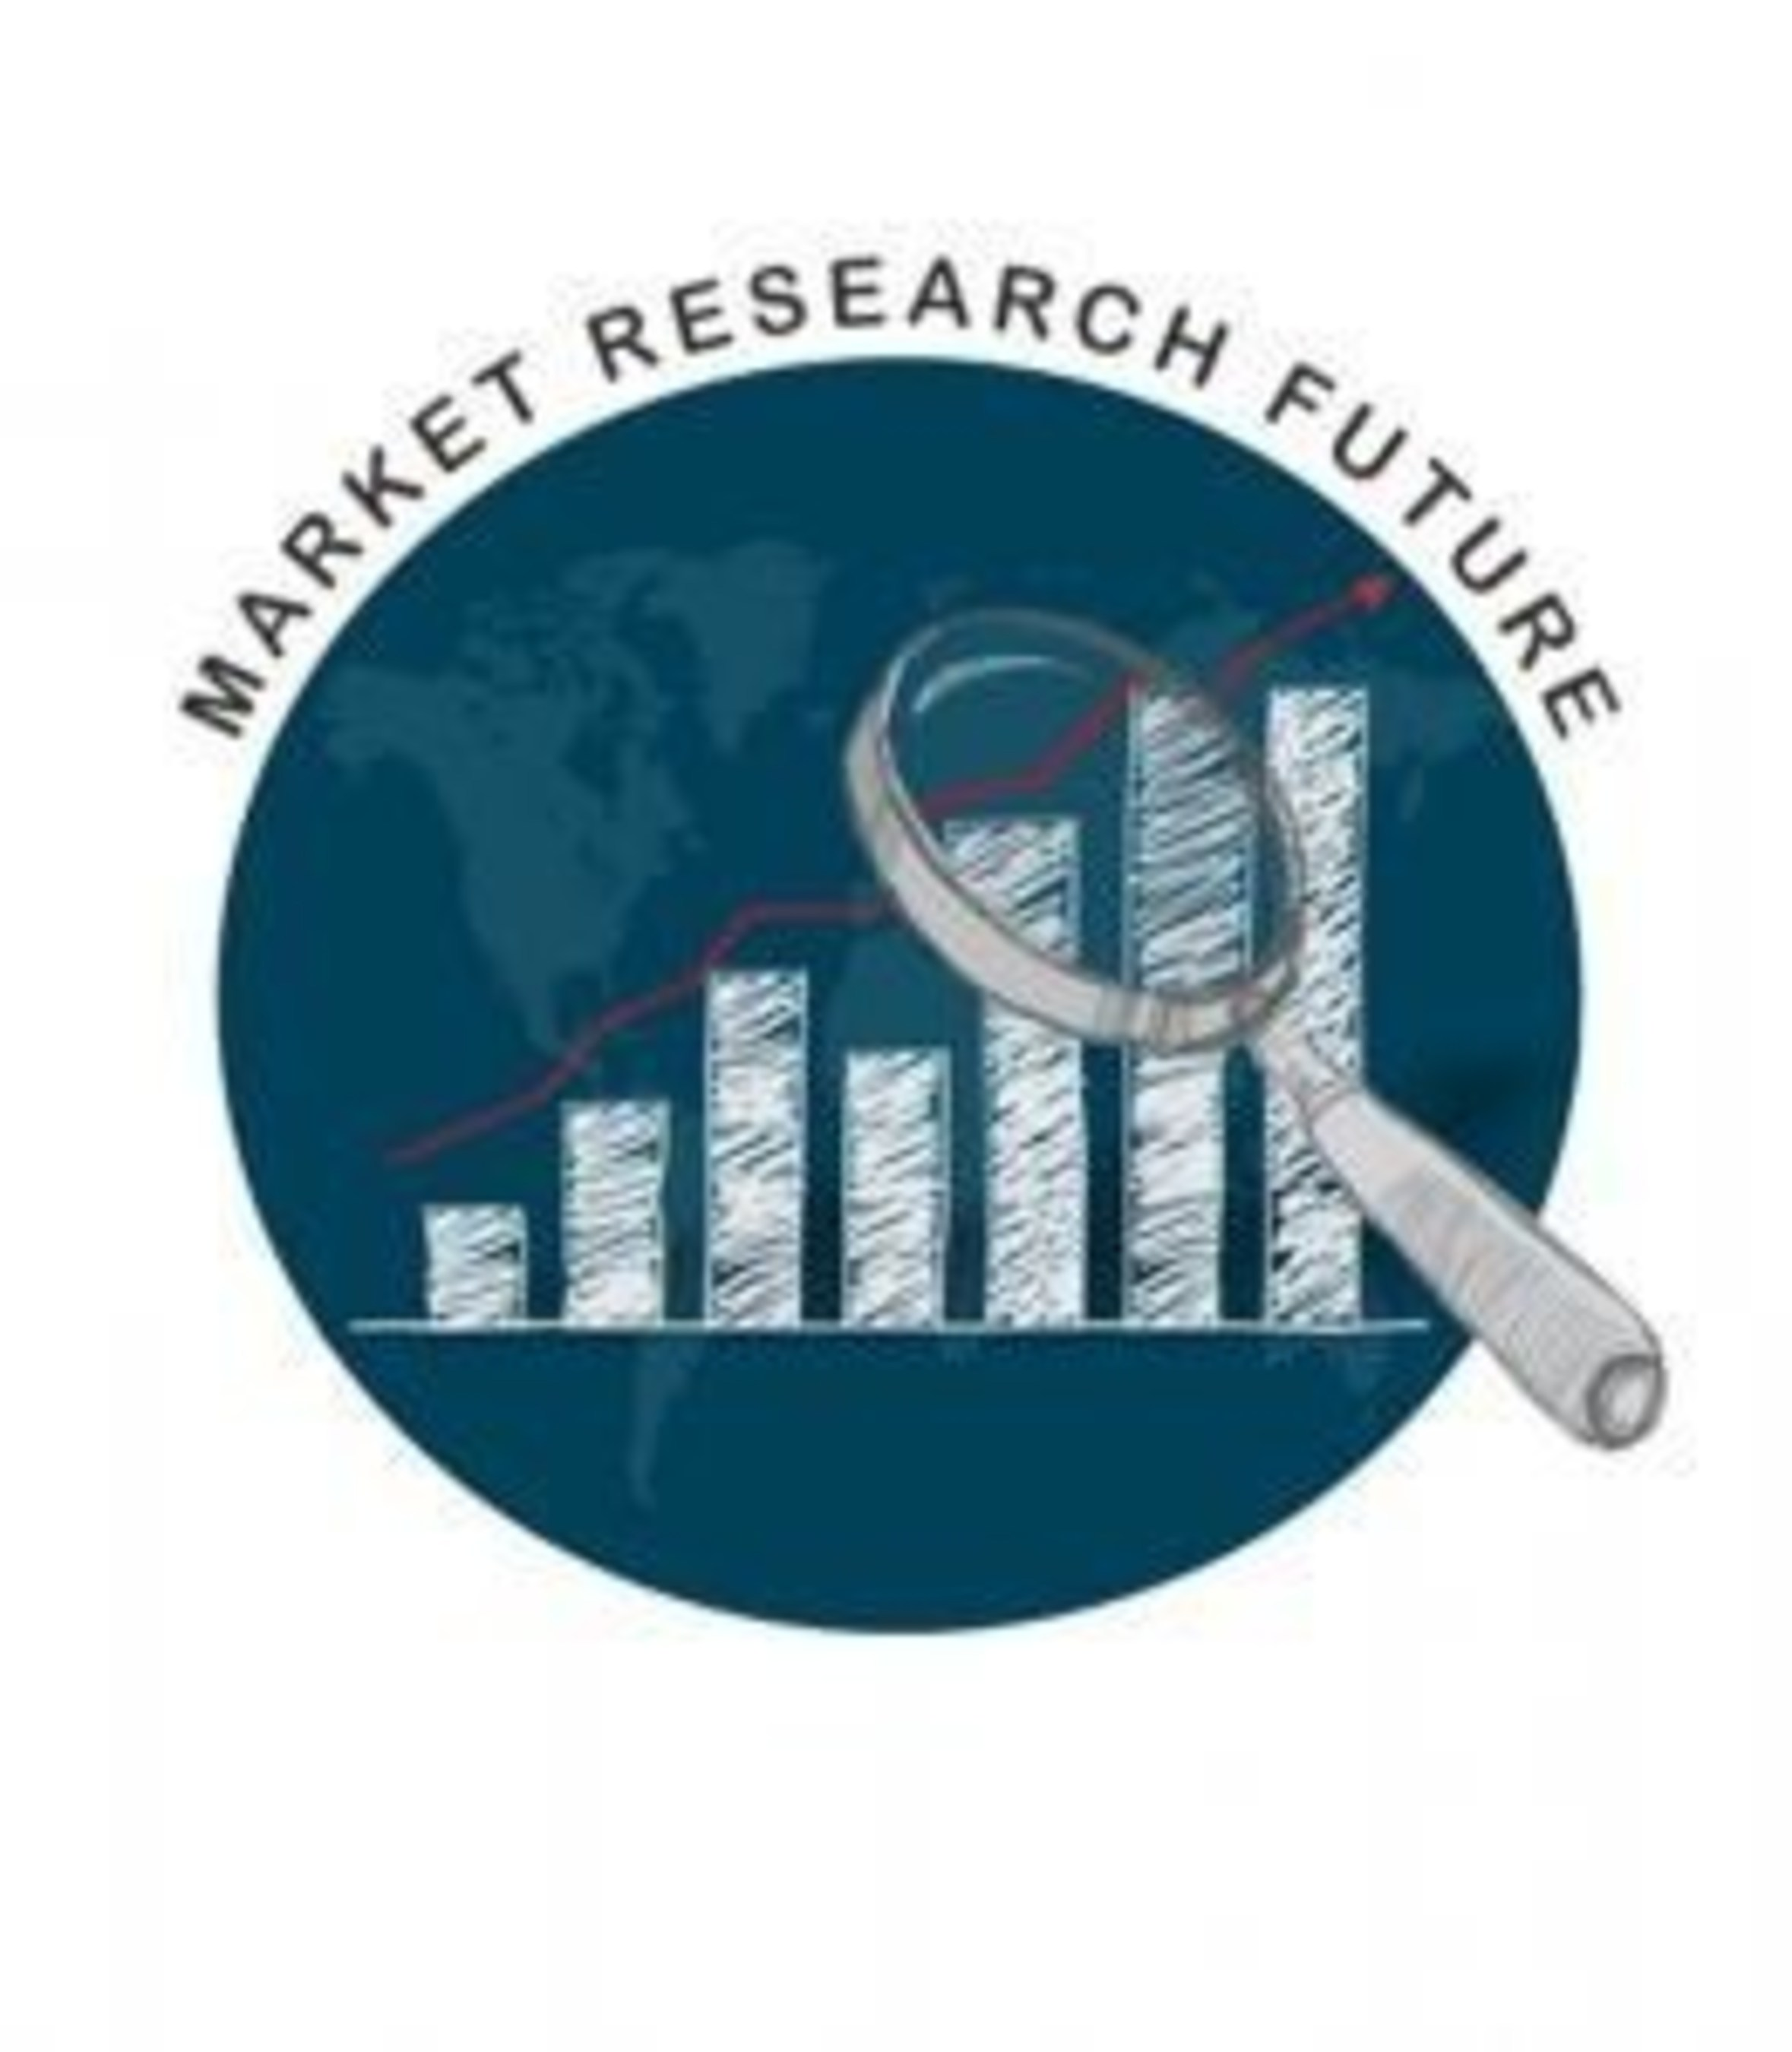 Global Human Machine Interface Market Information by Component (Control Panel, LED Indicator, Mechanical Switches), by Type (Industrial PC, Interface software), by Applic